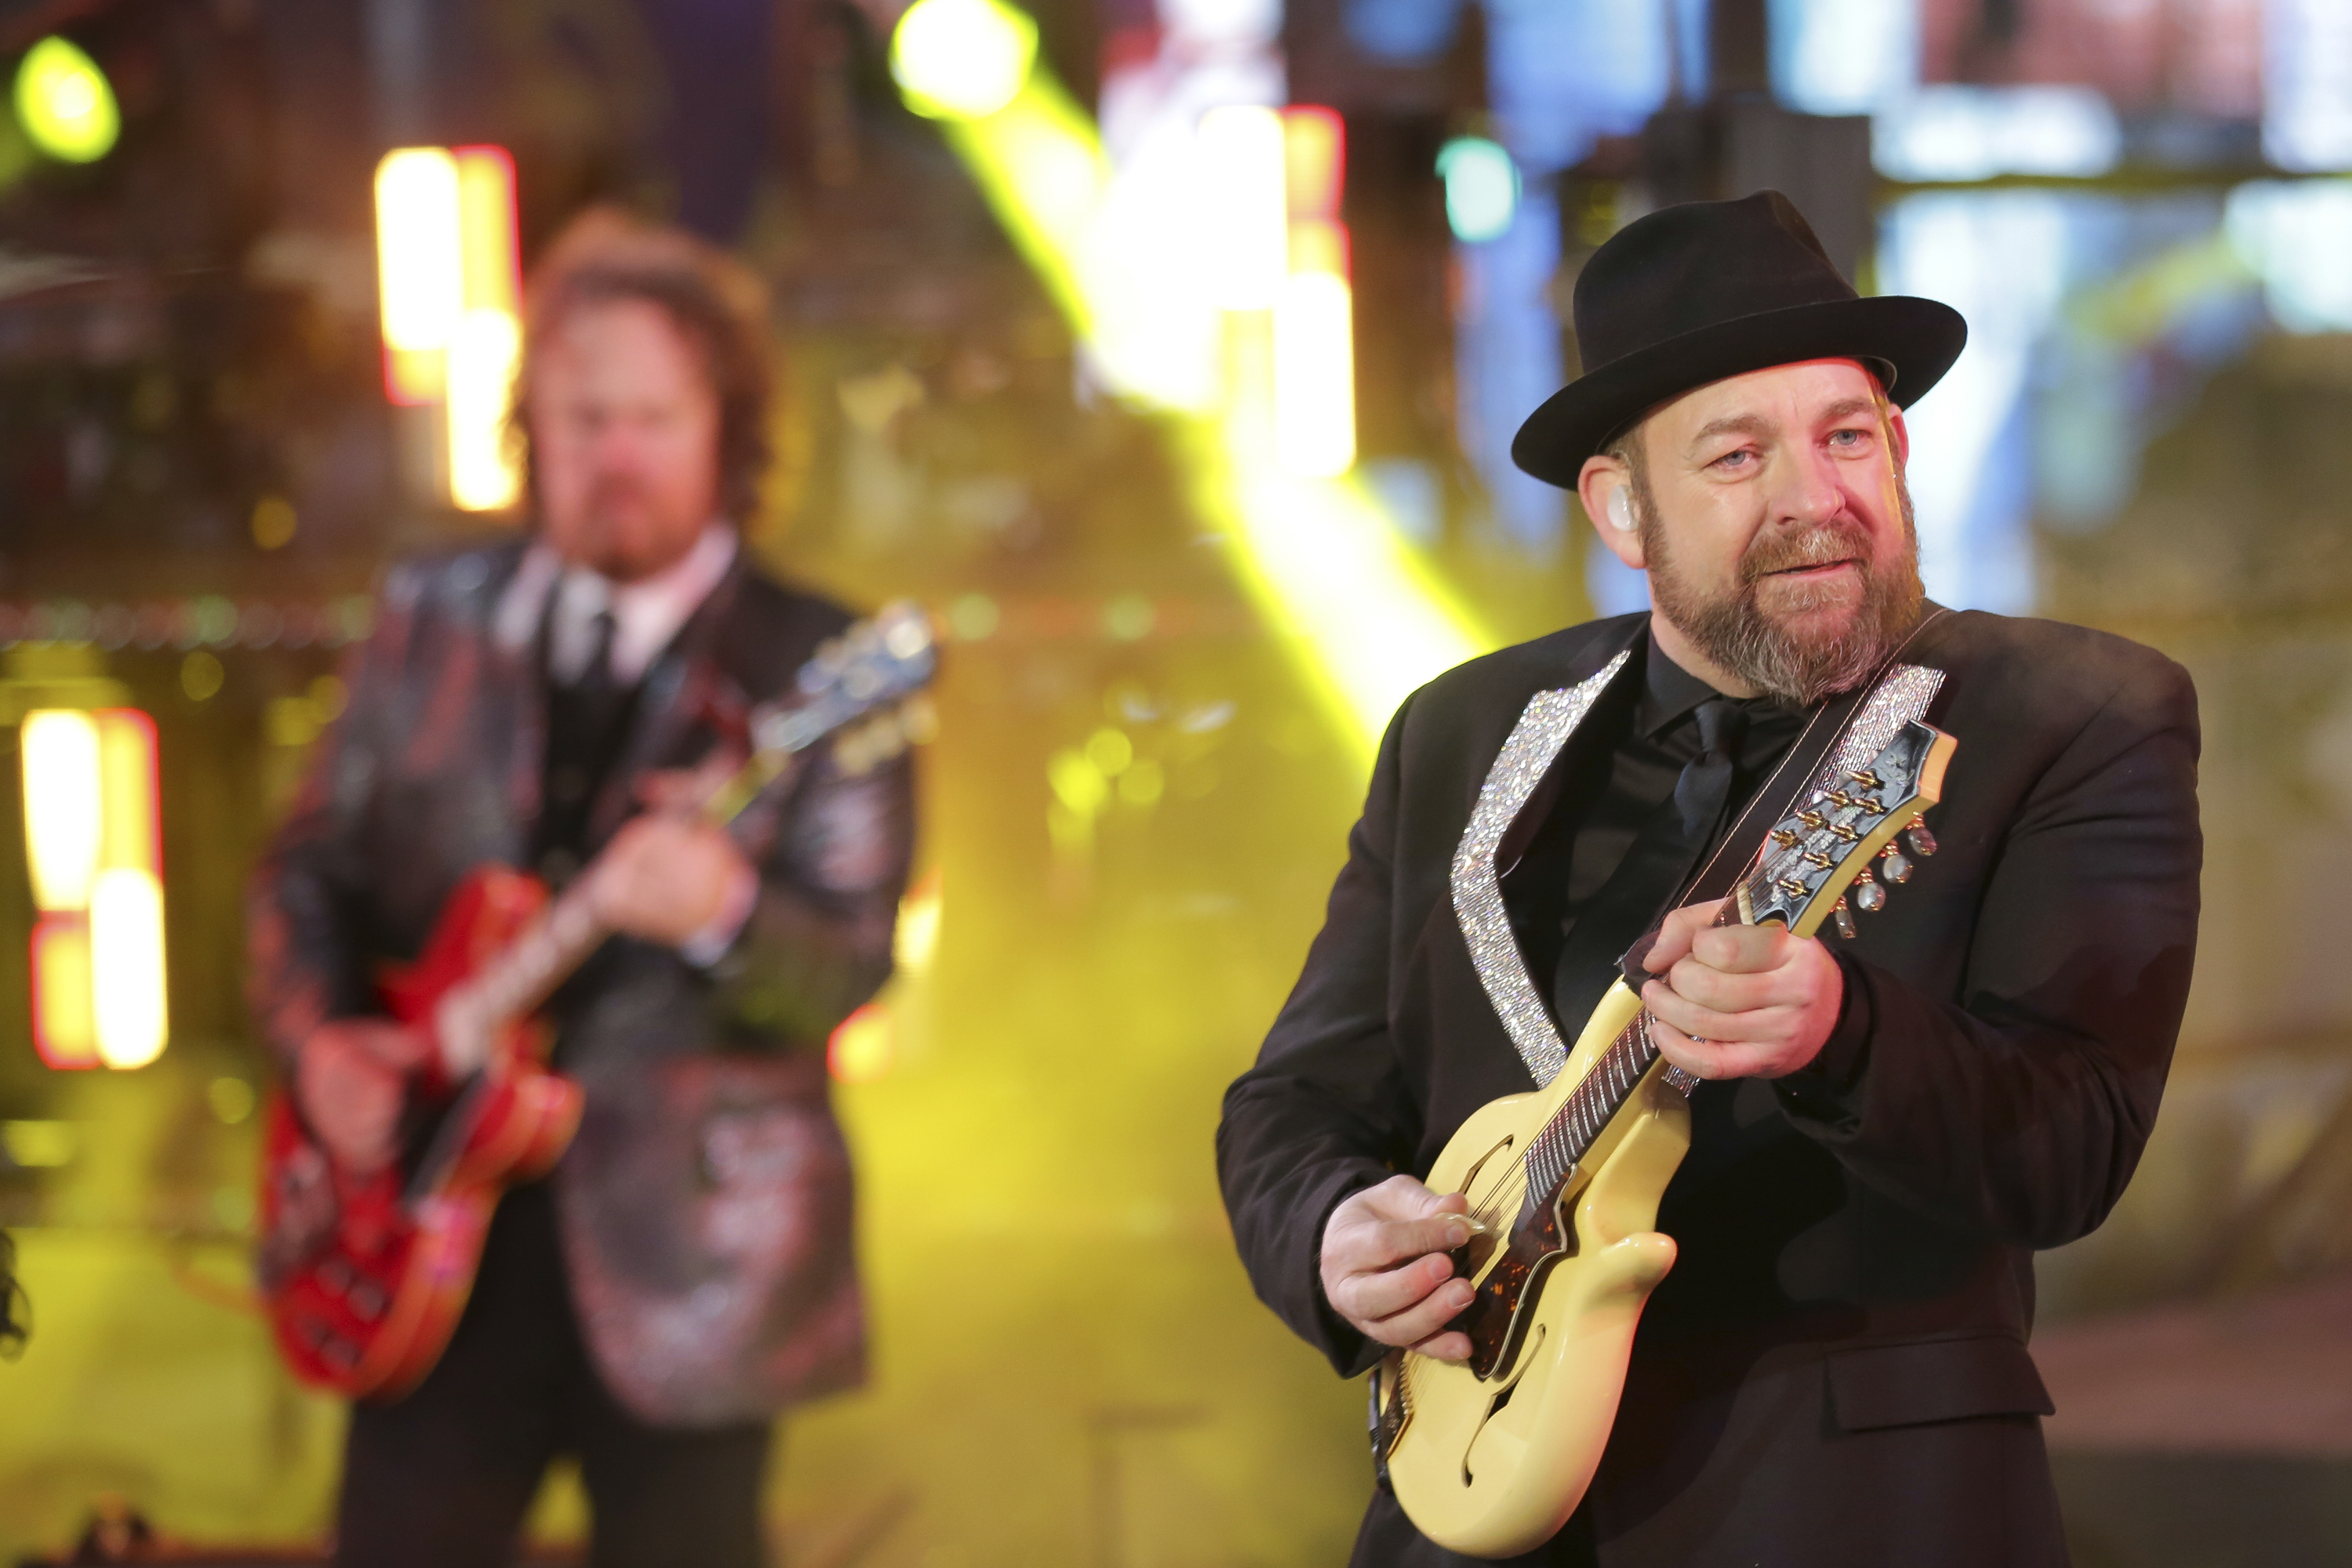 <div class='meta'><div class='origin-logo' data-origin='AP'></div><span class='caption-text' data-credit='Brent N. Clarke/Invision/AP'>Kristian Bush, right, of Sugarland, performs on stage at the New Year's Eve celebration in Times Square on Sunday, Dec. 31, 2017, in New York. )</span></div>